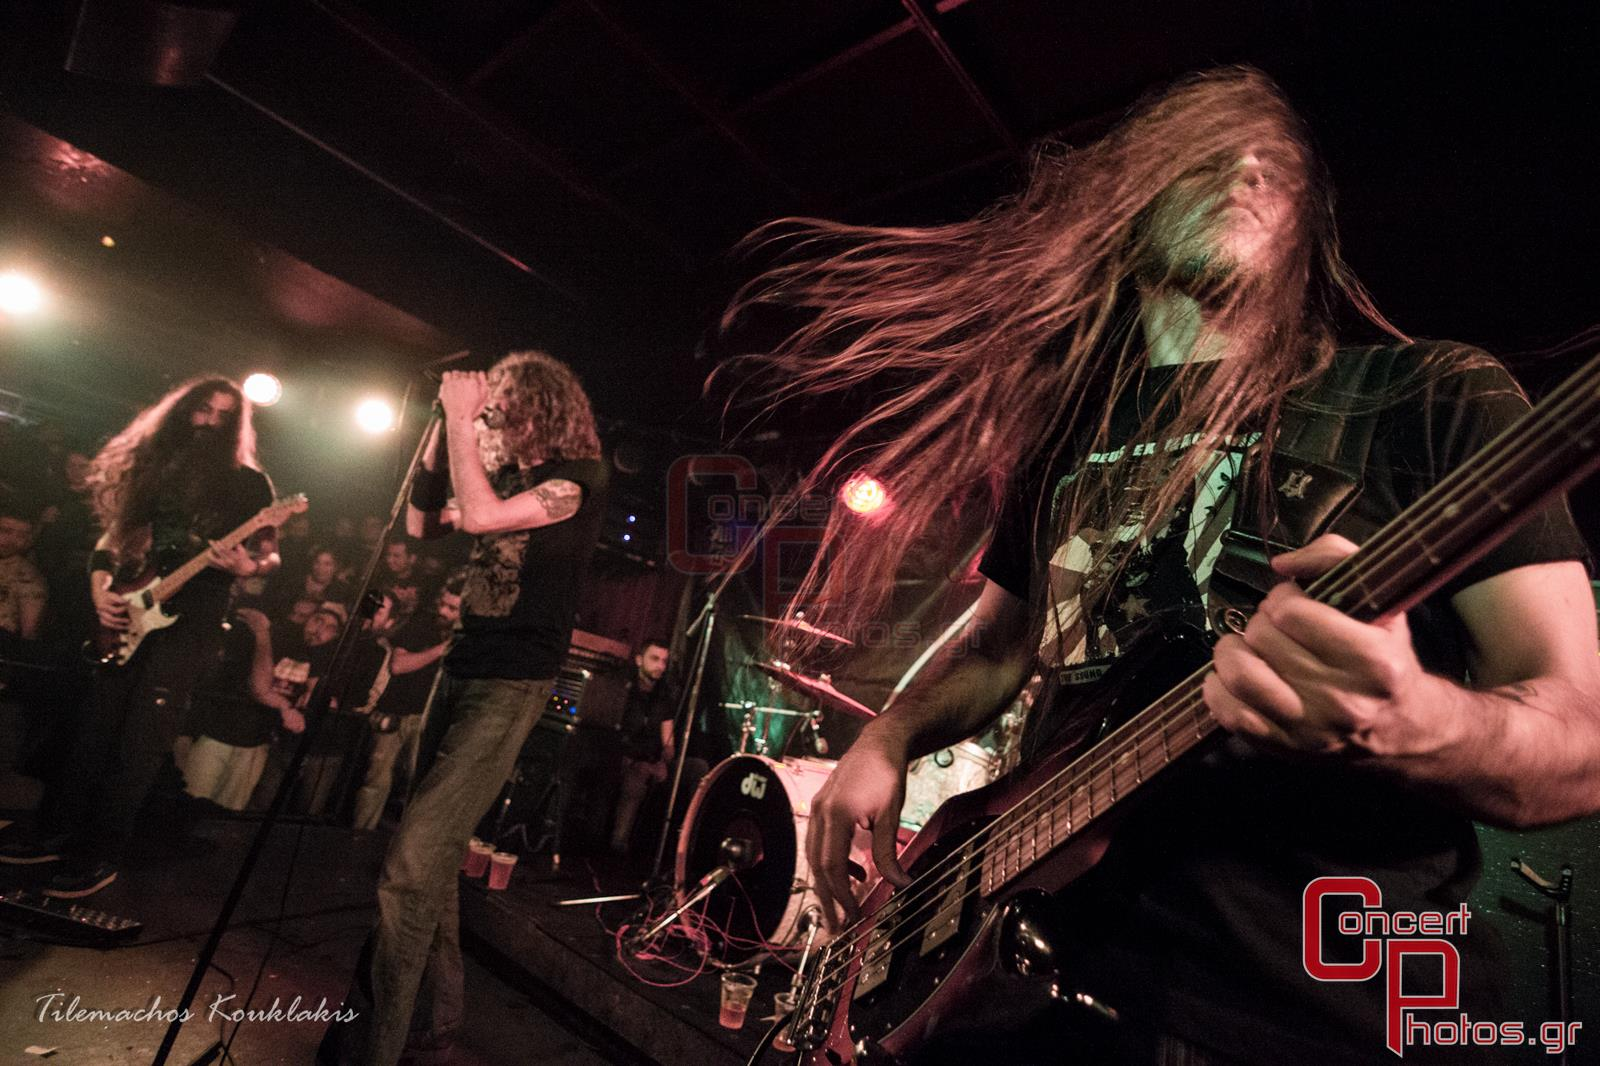 Nightstalker-Nightstalker AN Club photographer:  - concertphotos_-34